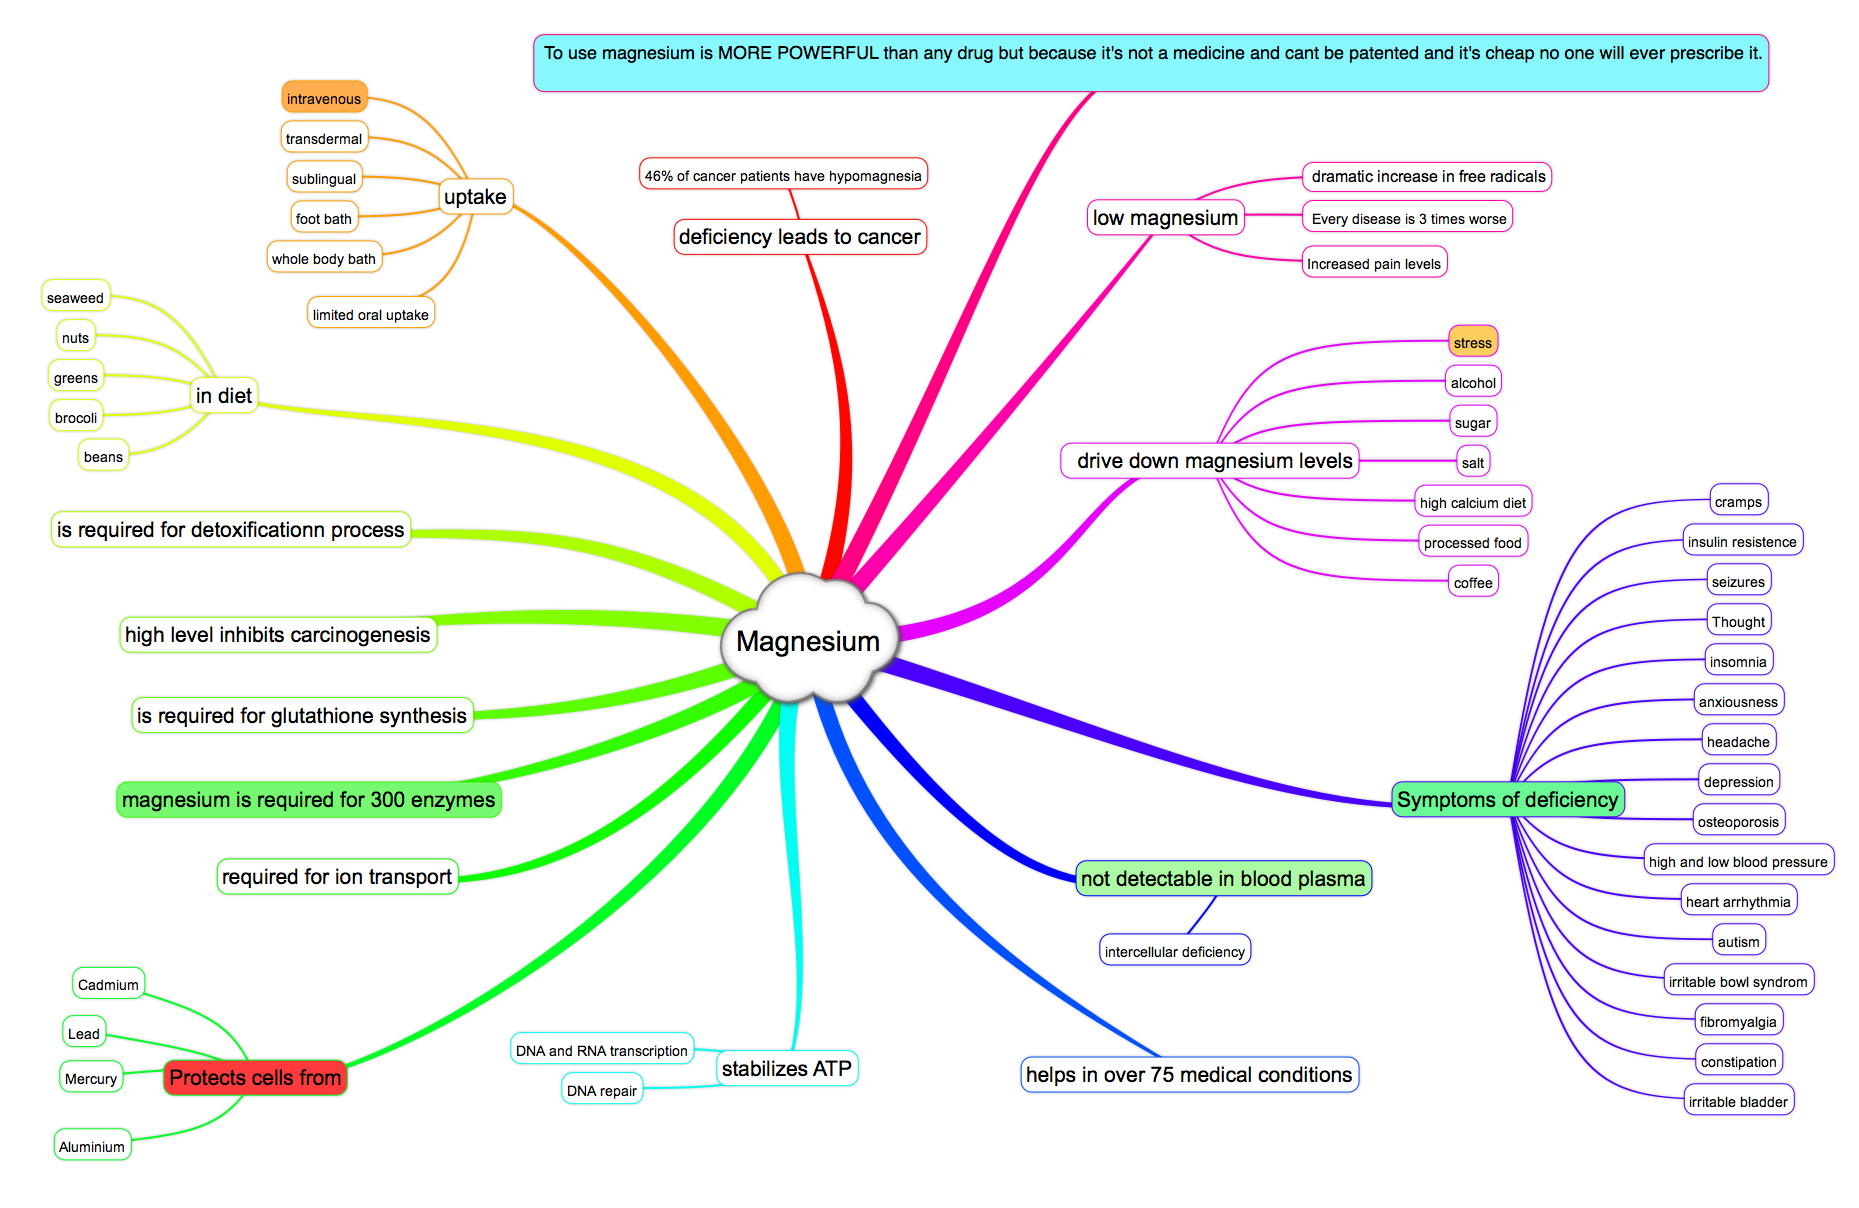 Magnesium mind map  at is.gd/VDMag